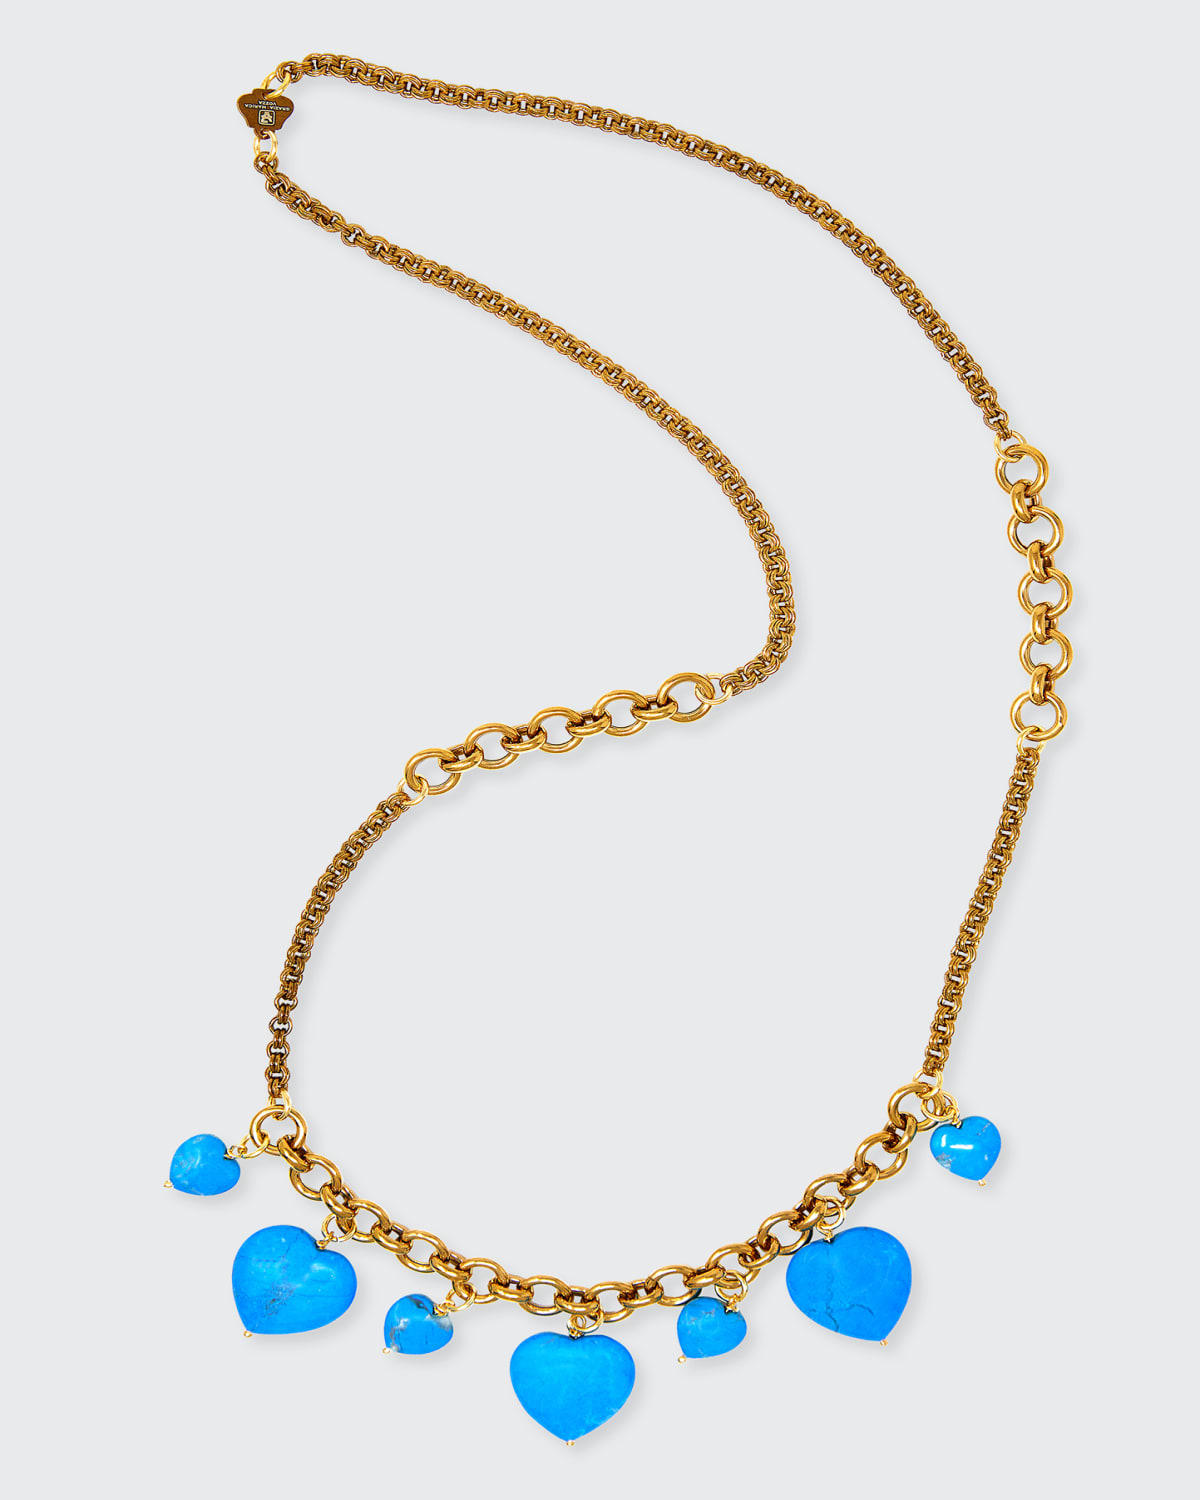 7-Heart Charm Turquoise Necklace